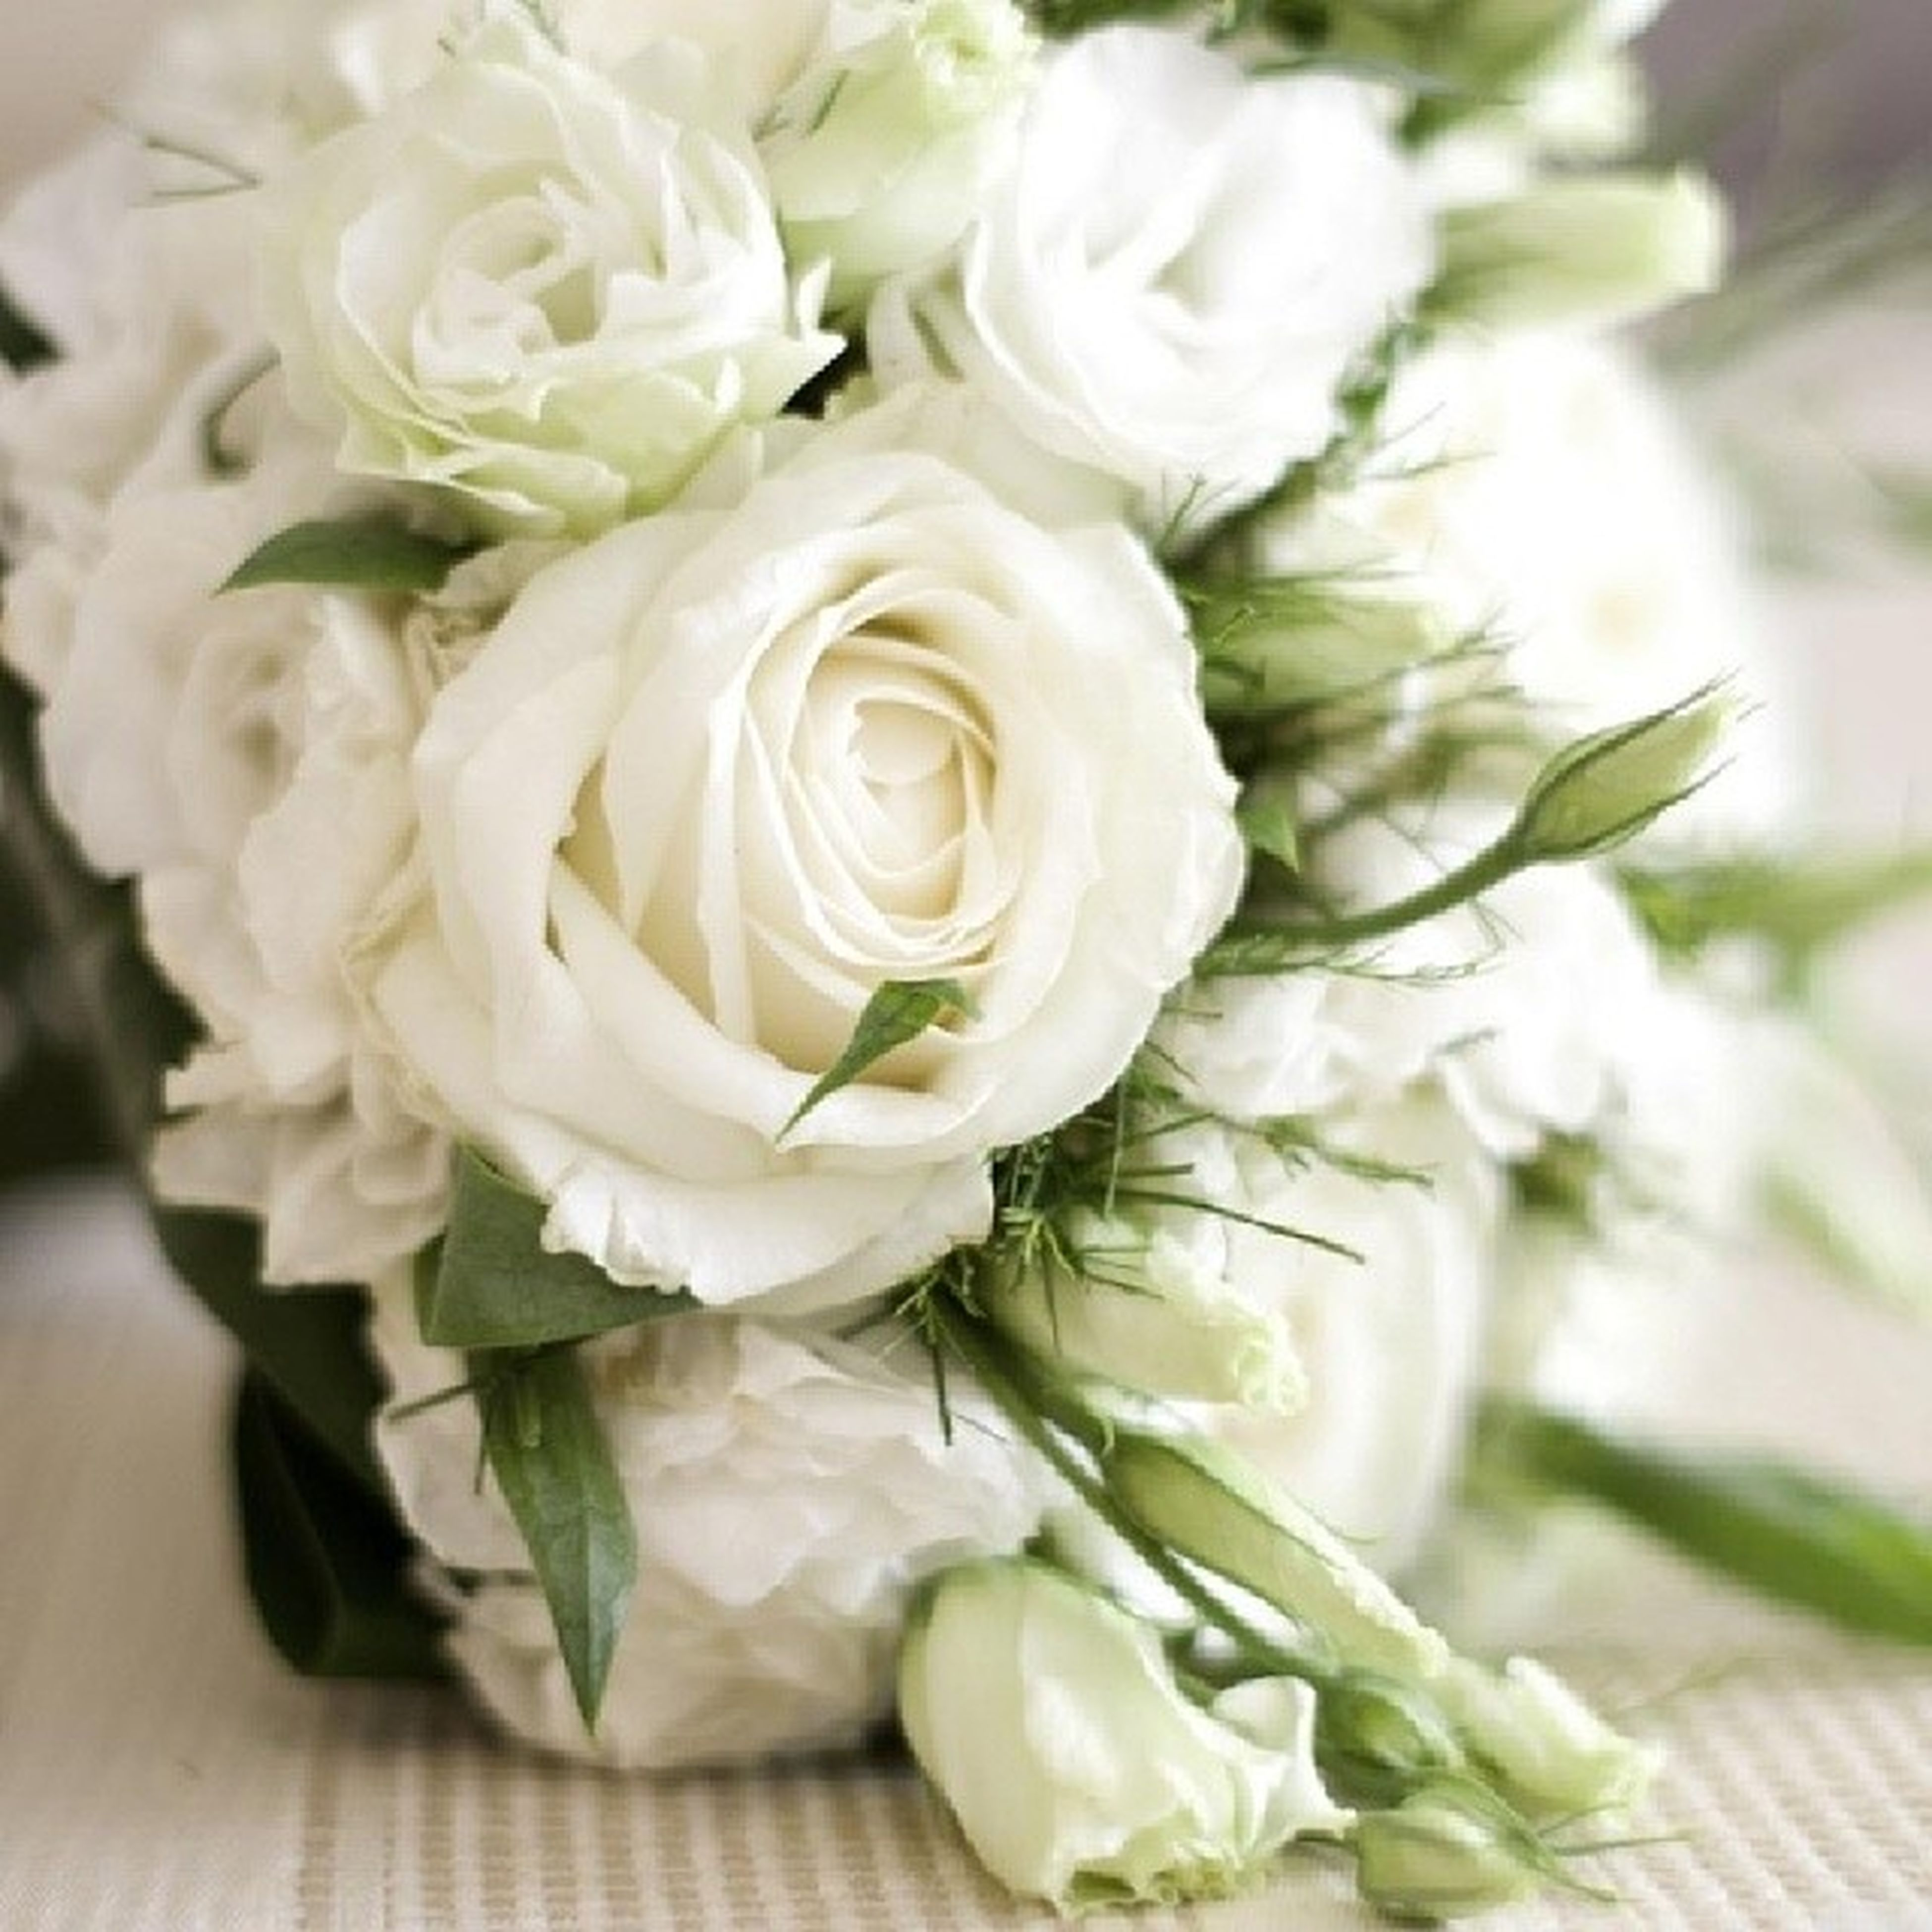 flower, freshness, fragility, petal, flower head, beauty in nature, growth, white color, close-up, rose - flower, nature, bunch of flowers, plant, indoors, blooming, focus on foreground, blossom, bouquet, leaf, high angle view